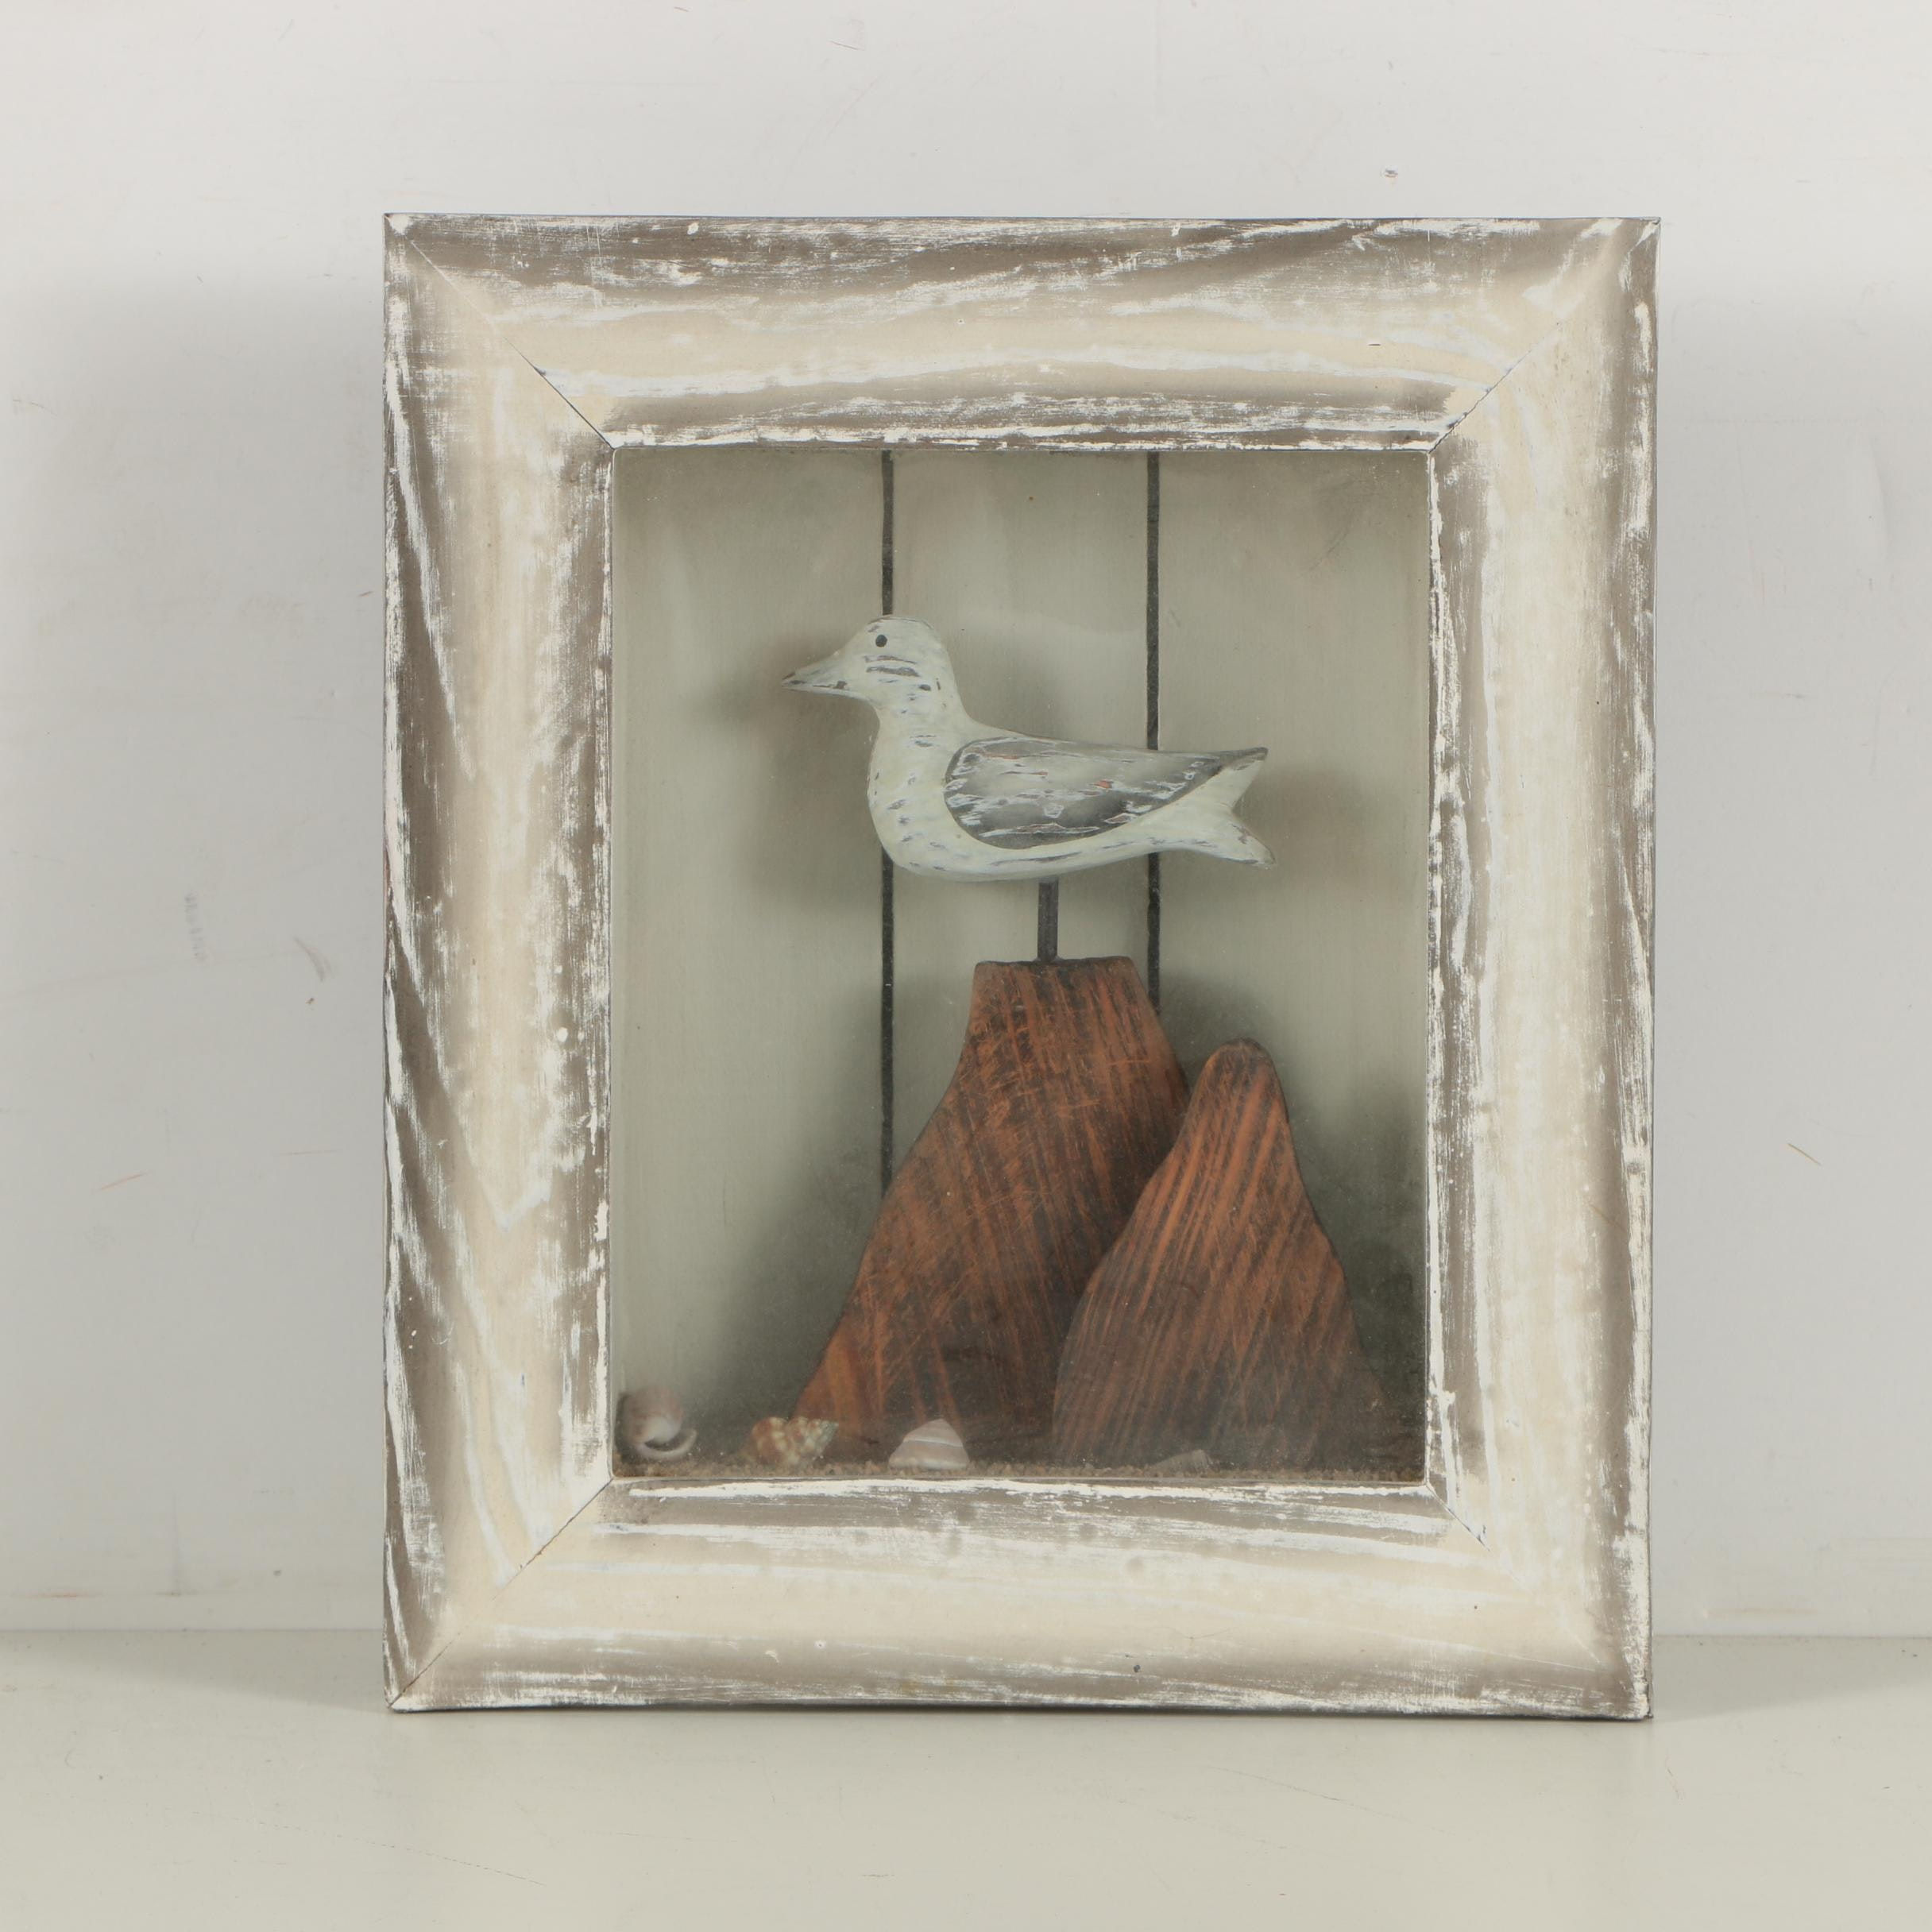 Wood Carving of Gull in Shadowbox